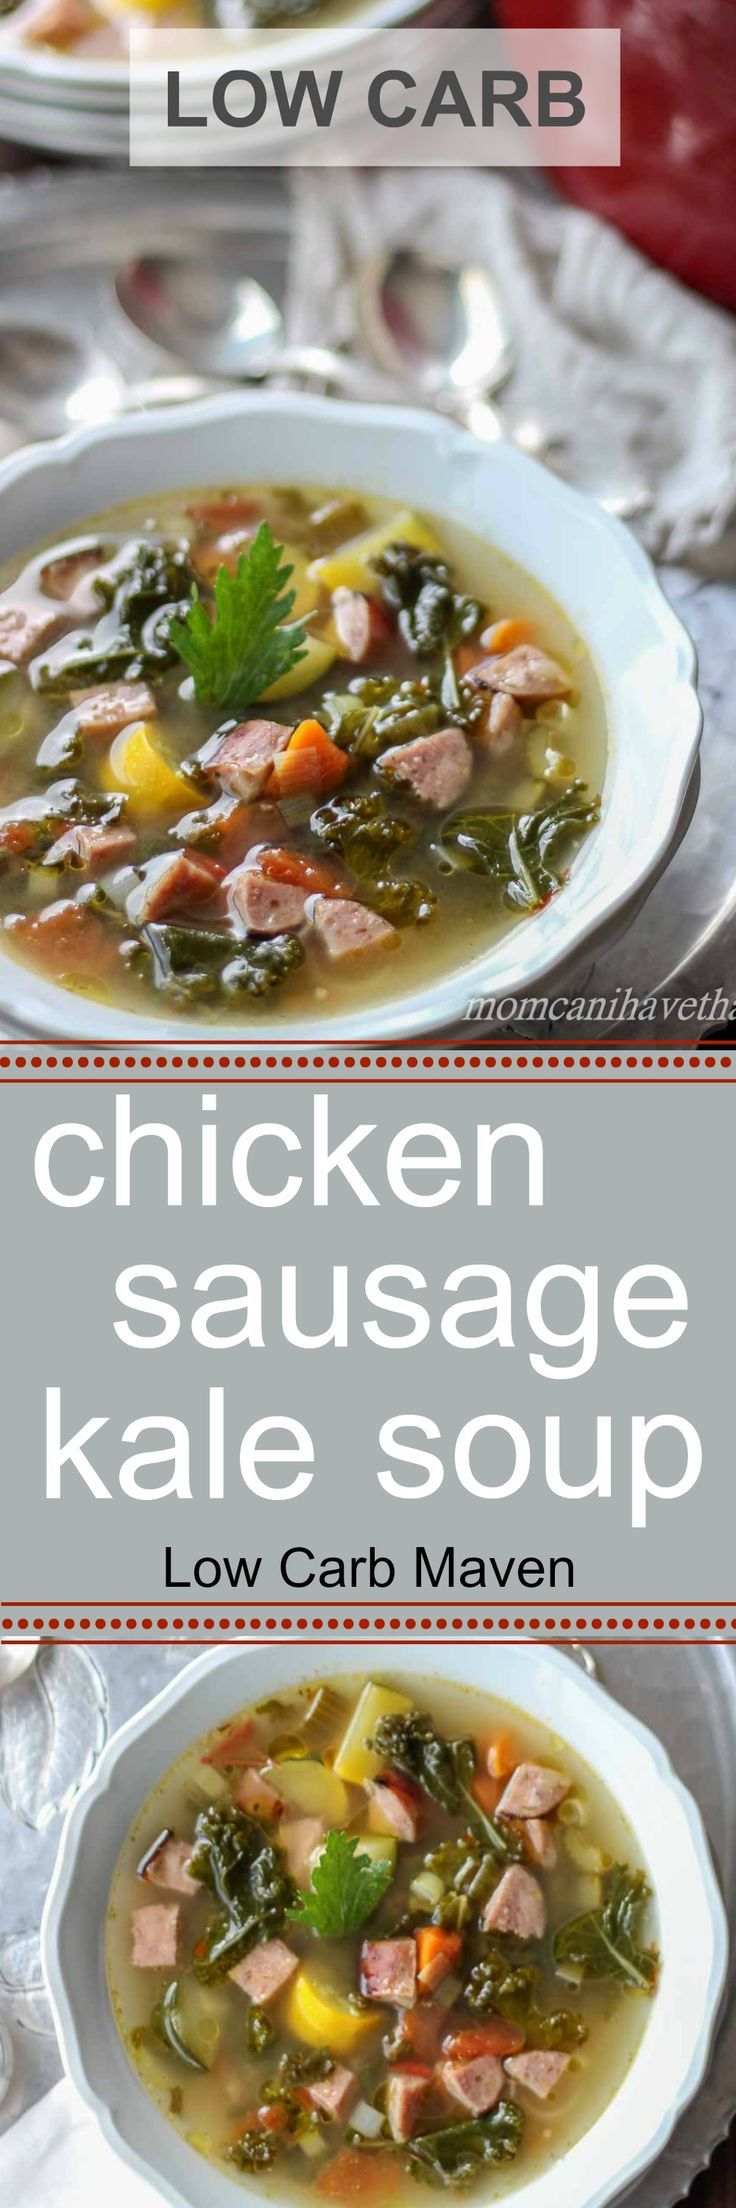 This warming soup with chicken, sausage & kale makes the perfect low carb lunch.